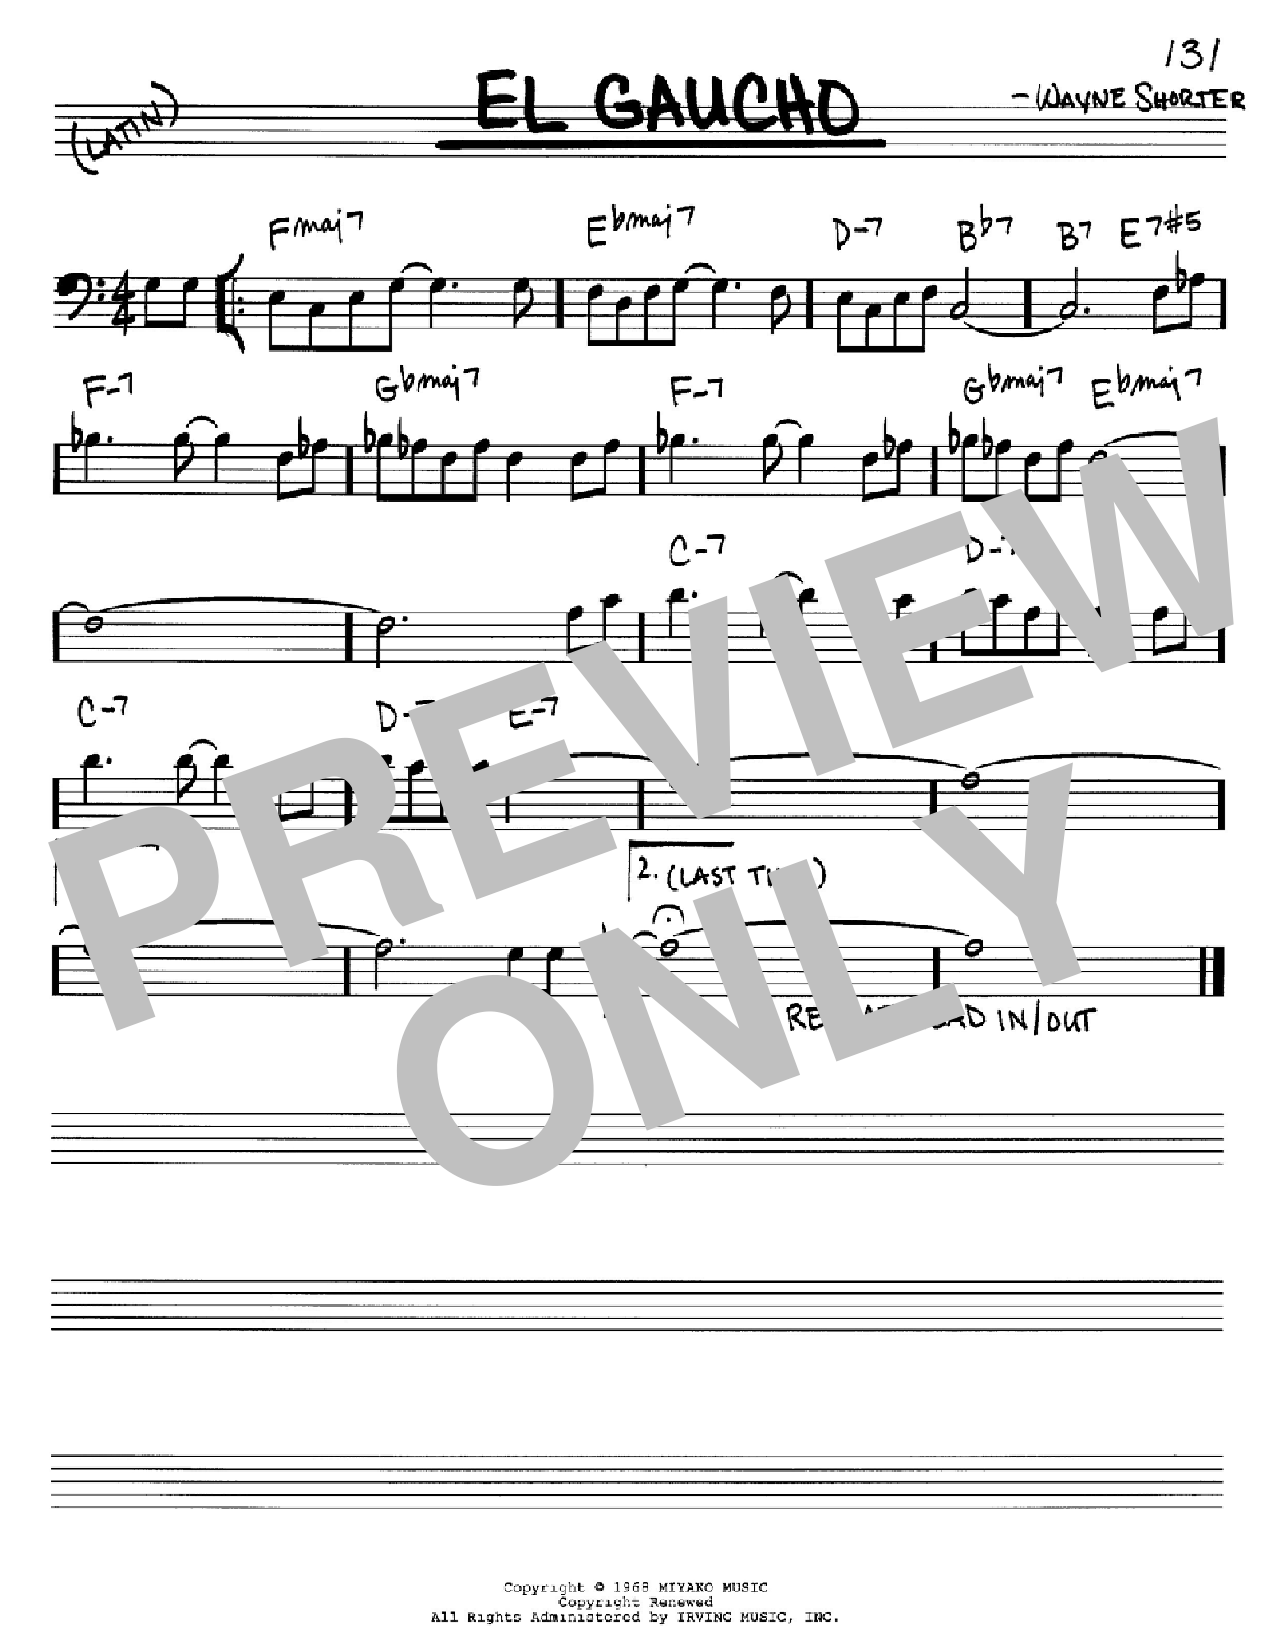 El Gaucho Sheet Music